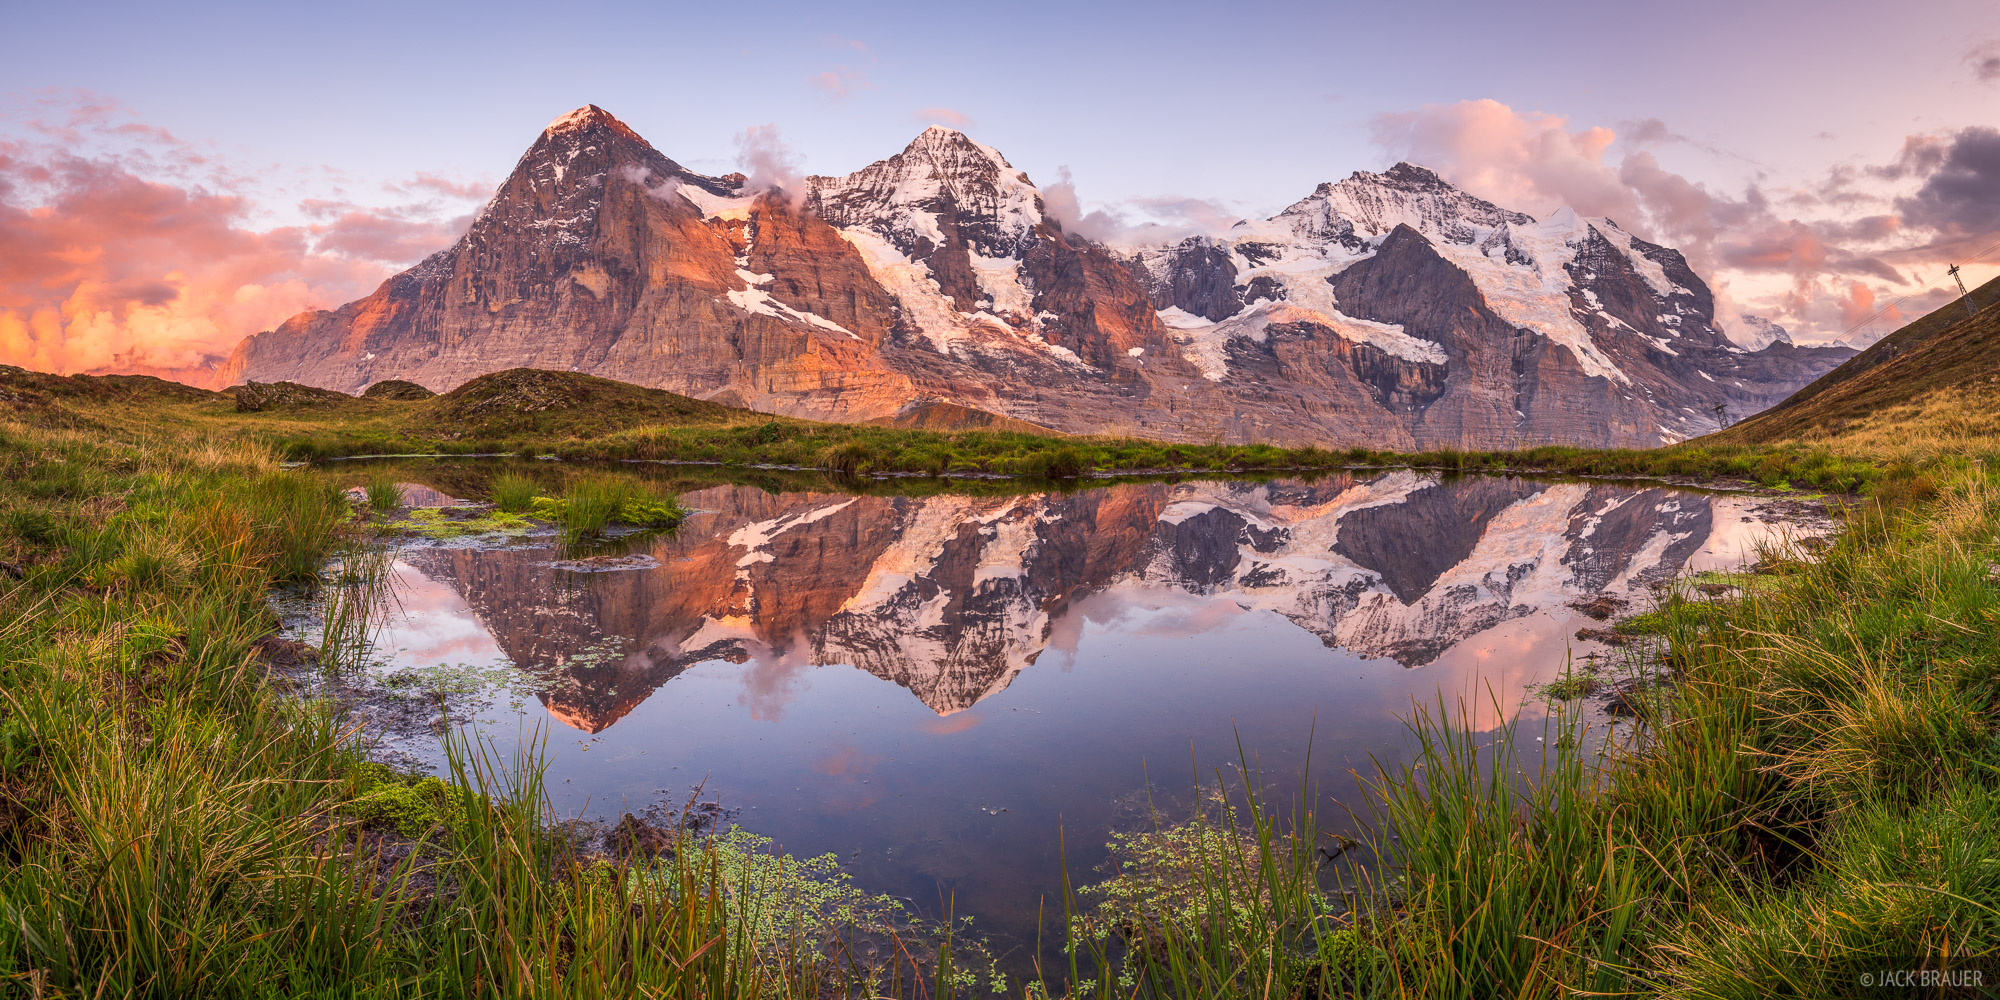 Bernese Alps, Eiger, Jungfrau, Kleine Scheidegg, Mönch, Switzerland, reflection, Bernese Oberland, panorama, Alps, photo